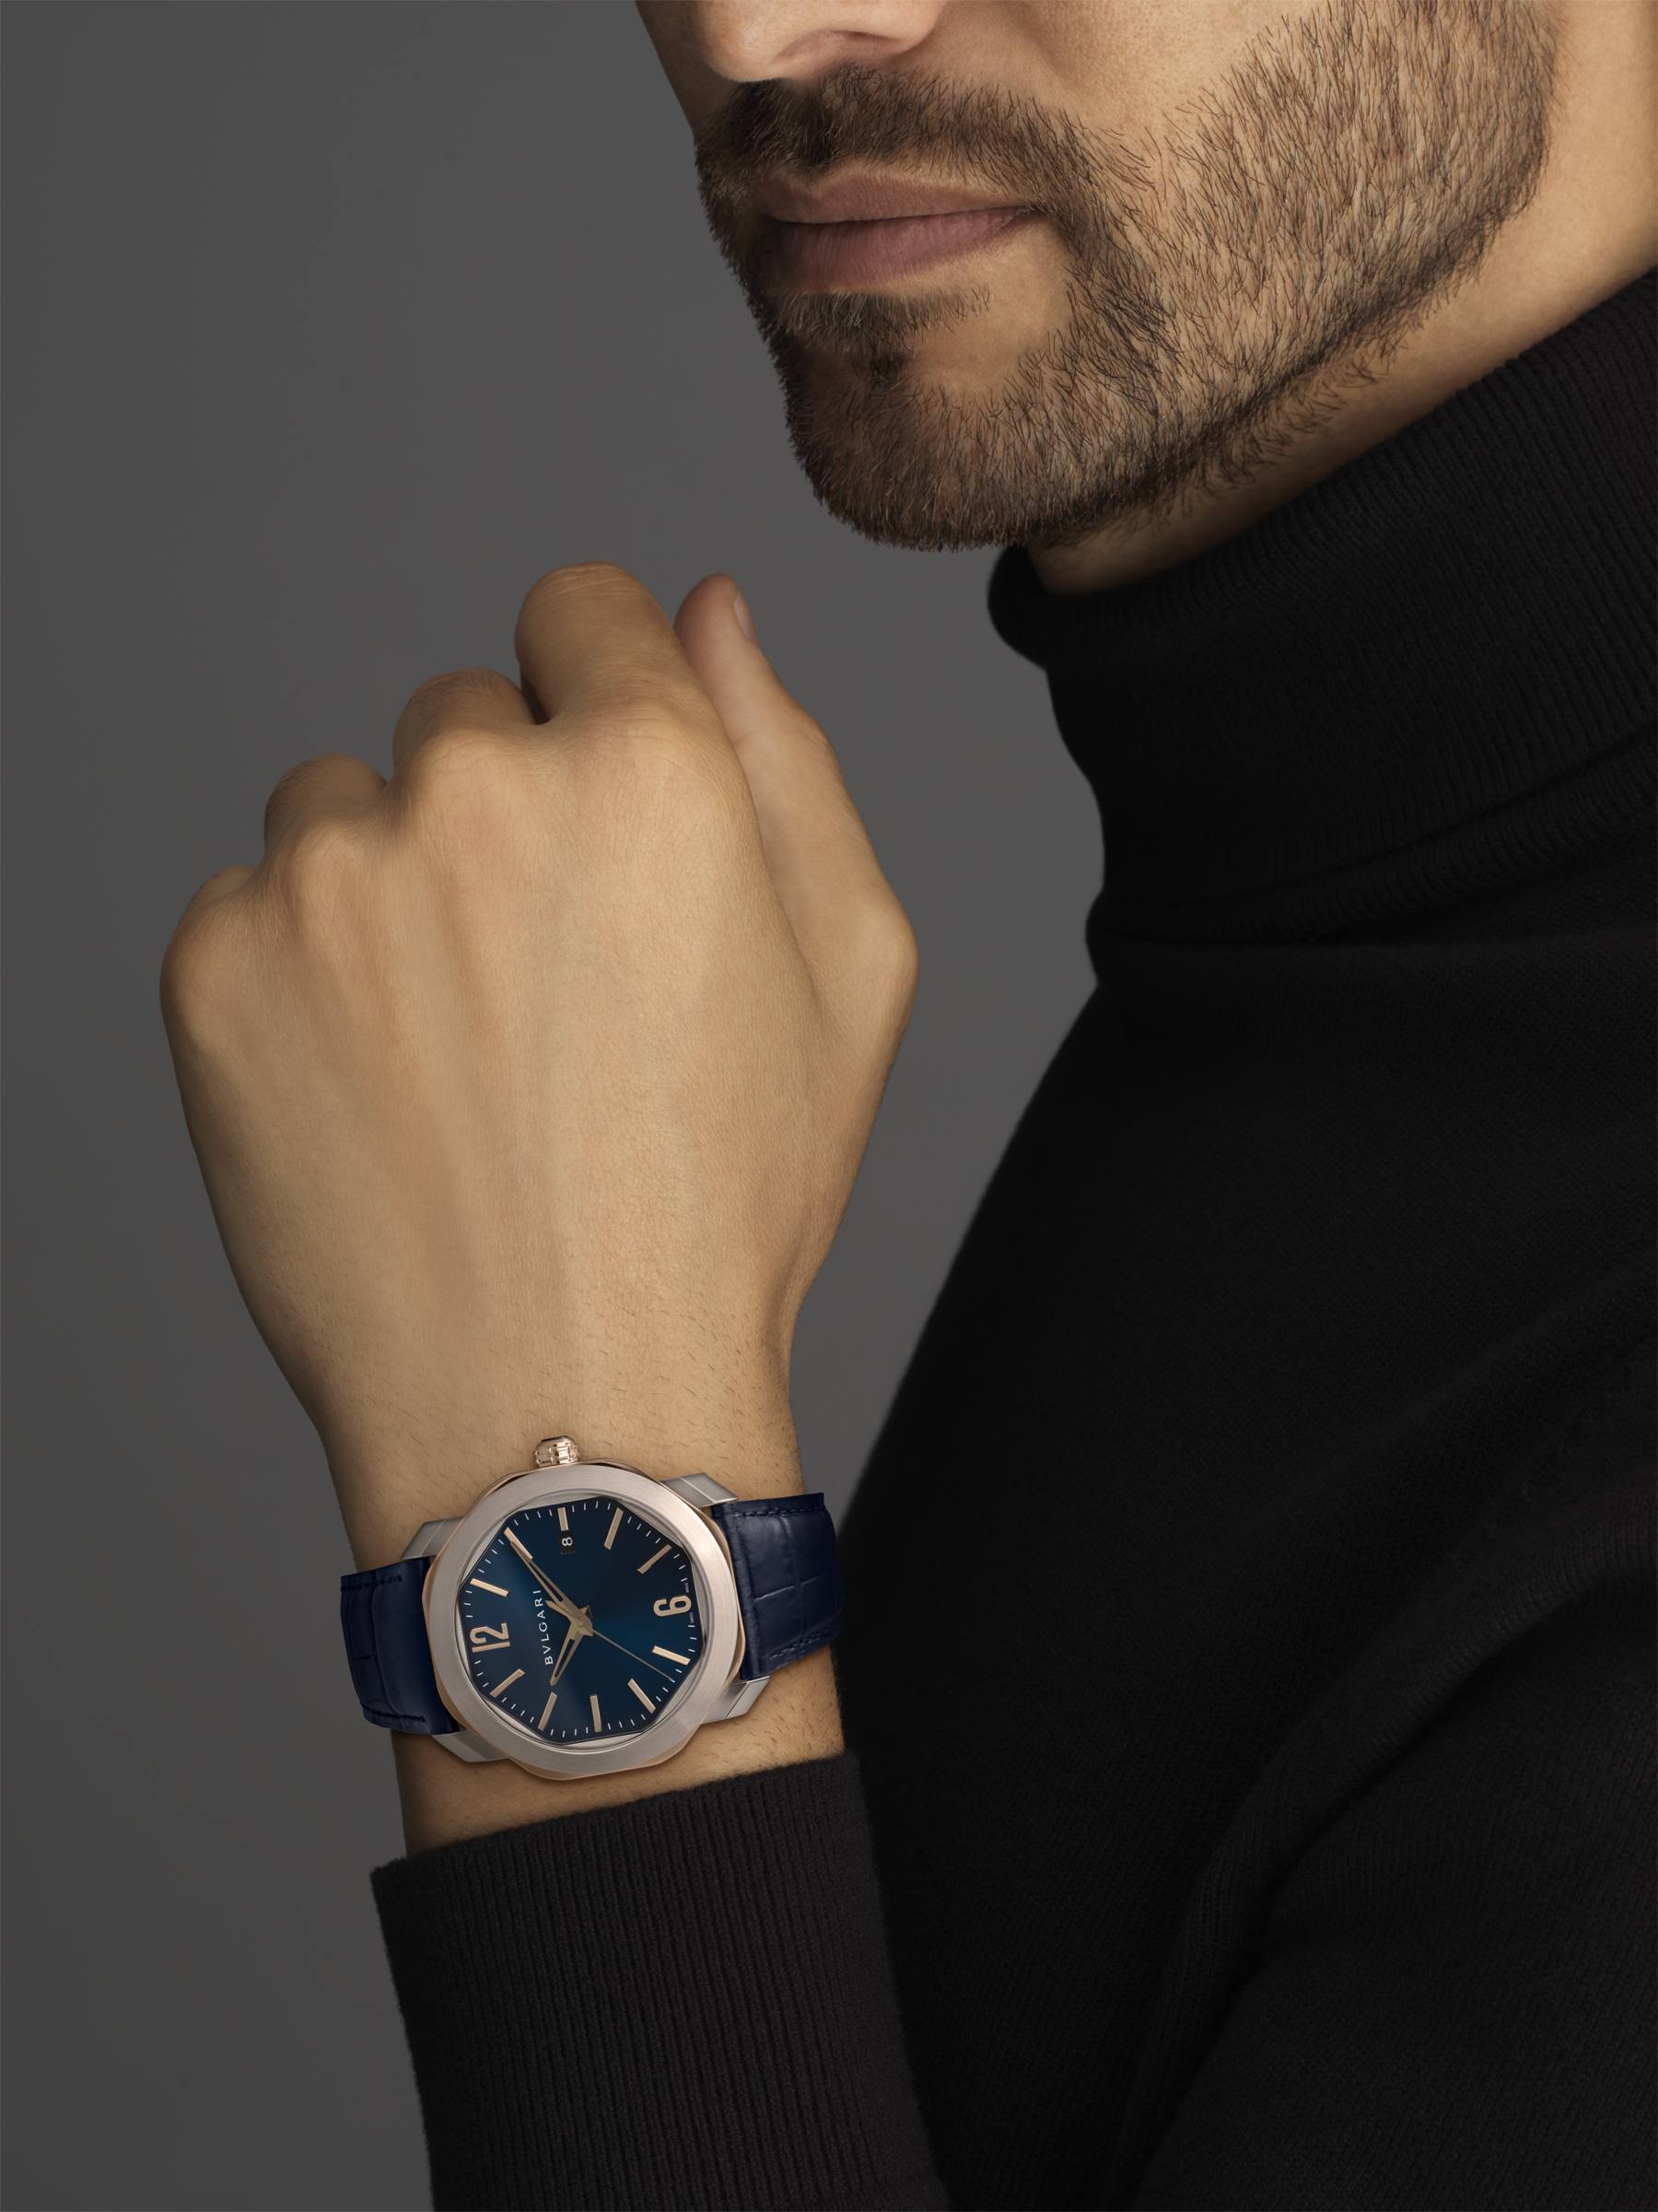 Octo Roma watch with mechanical manufacture movement, automatic winding, stainless steel and 18 kt rose gold case, blue dial and blue alligator bracelet. Water-resistant up to 50 meters. 103205 image 5